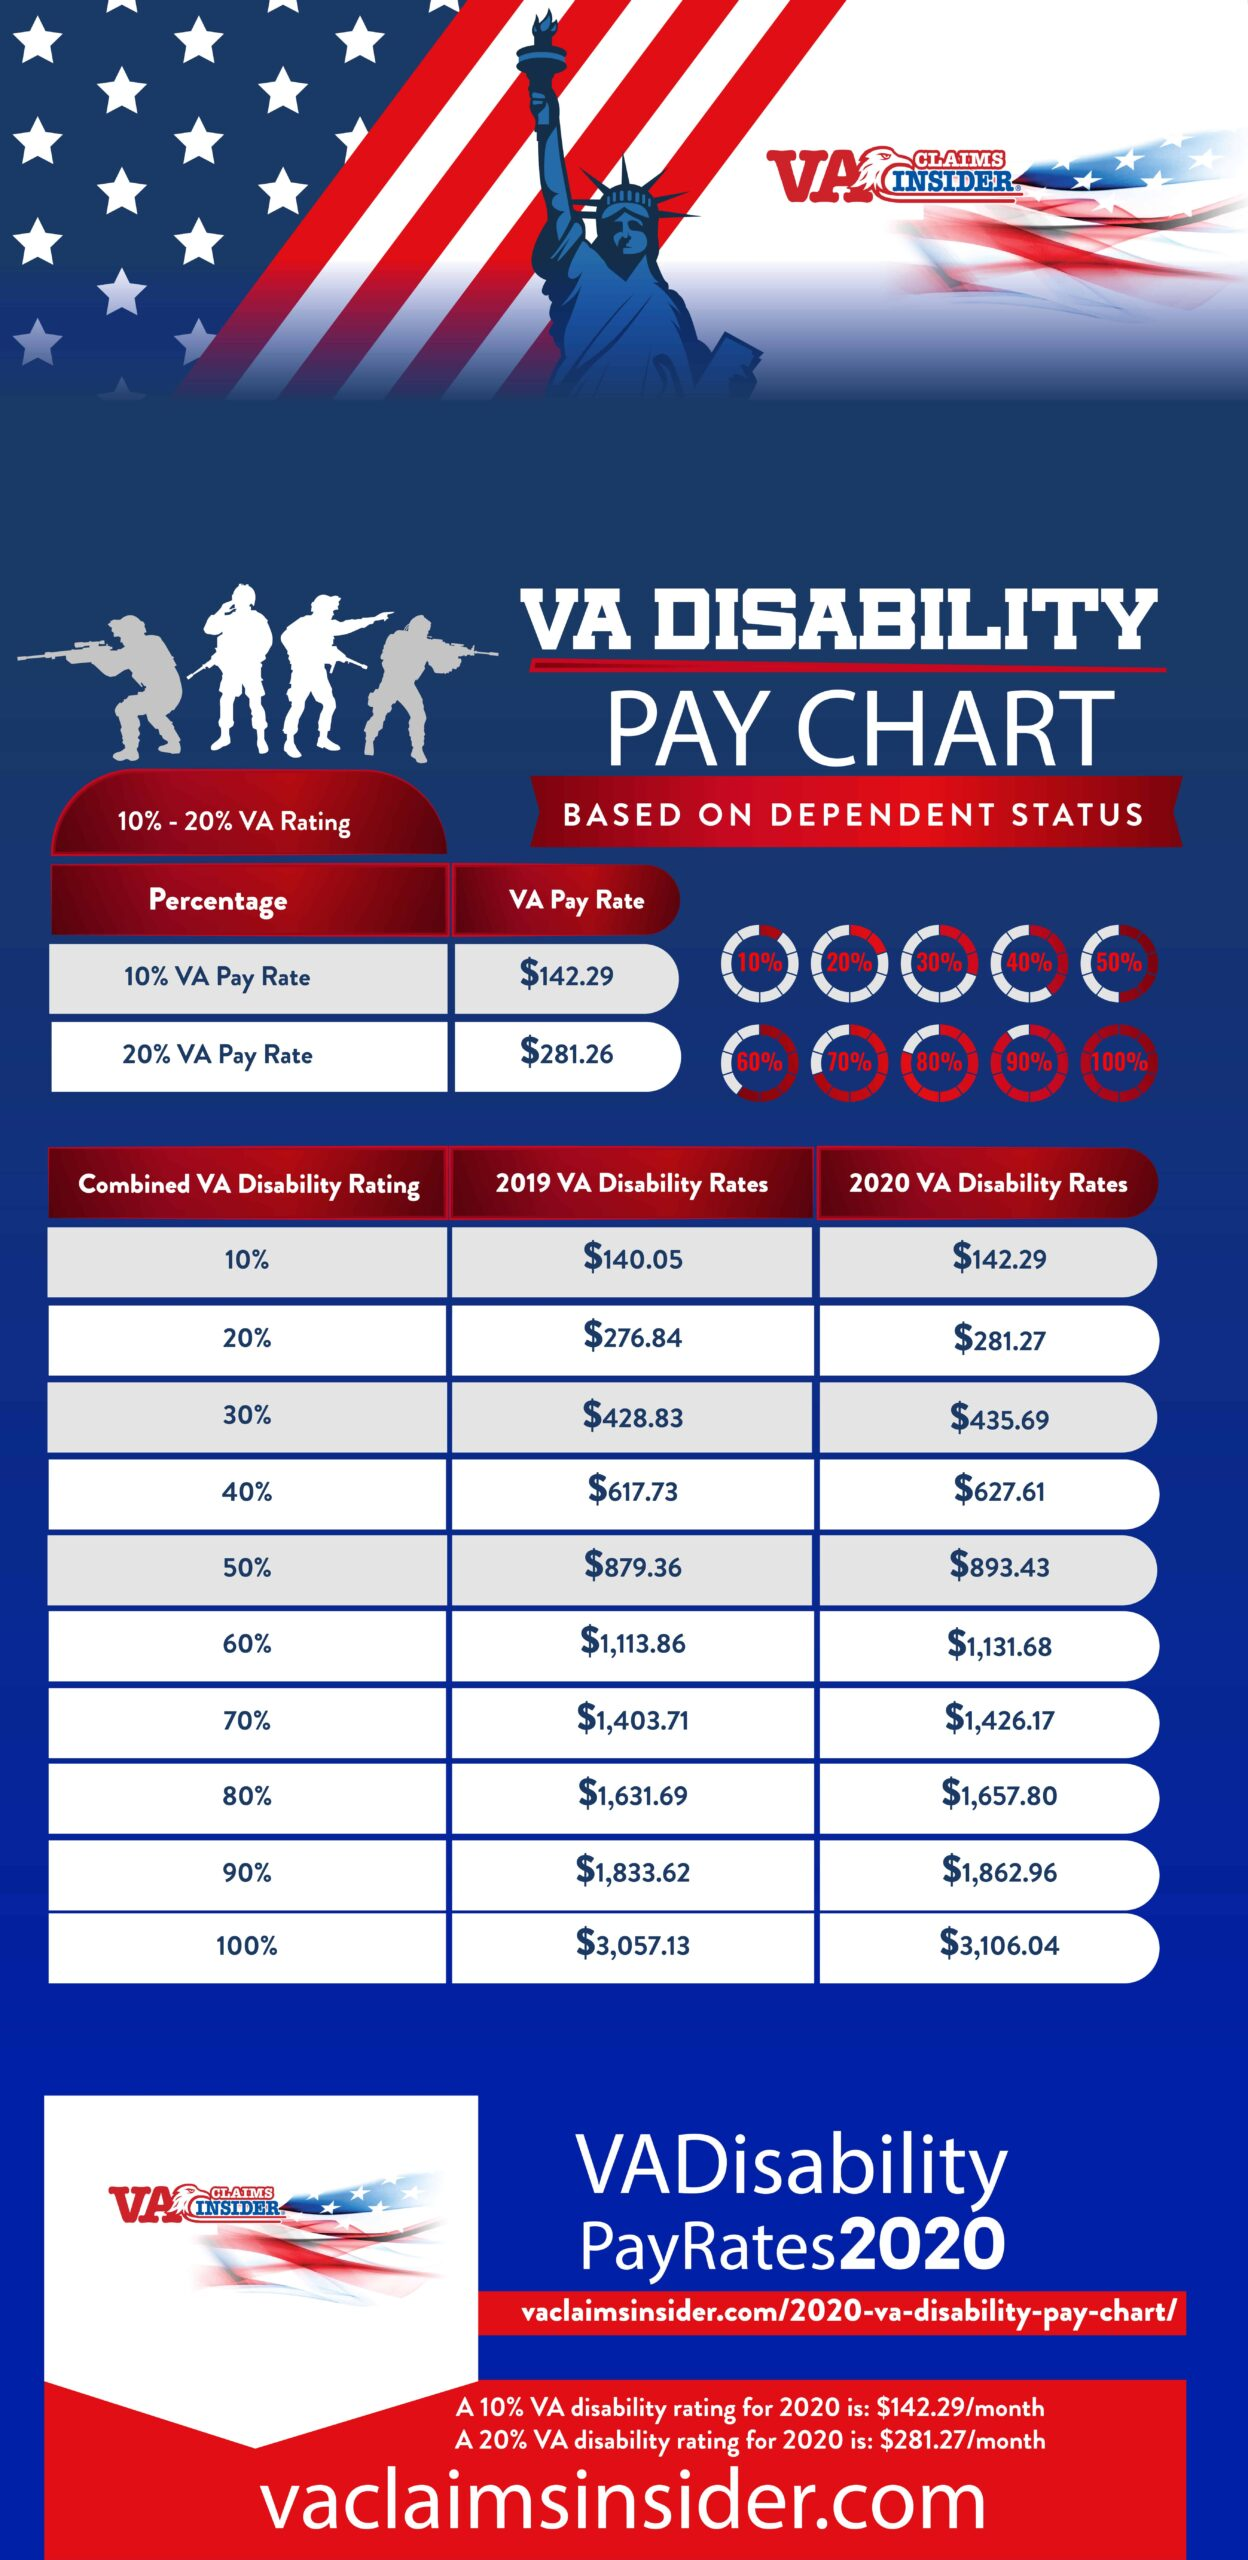 Va Disability Pay Chart